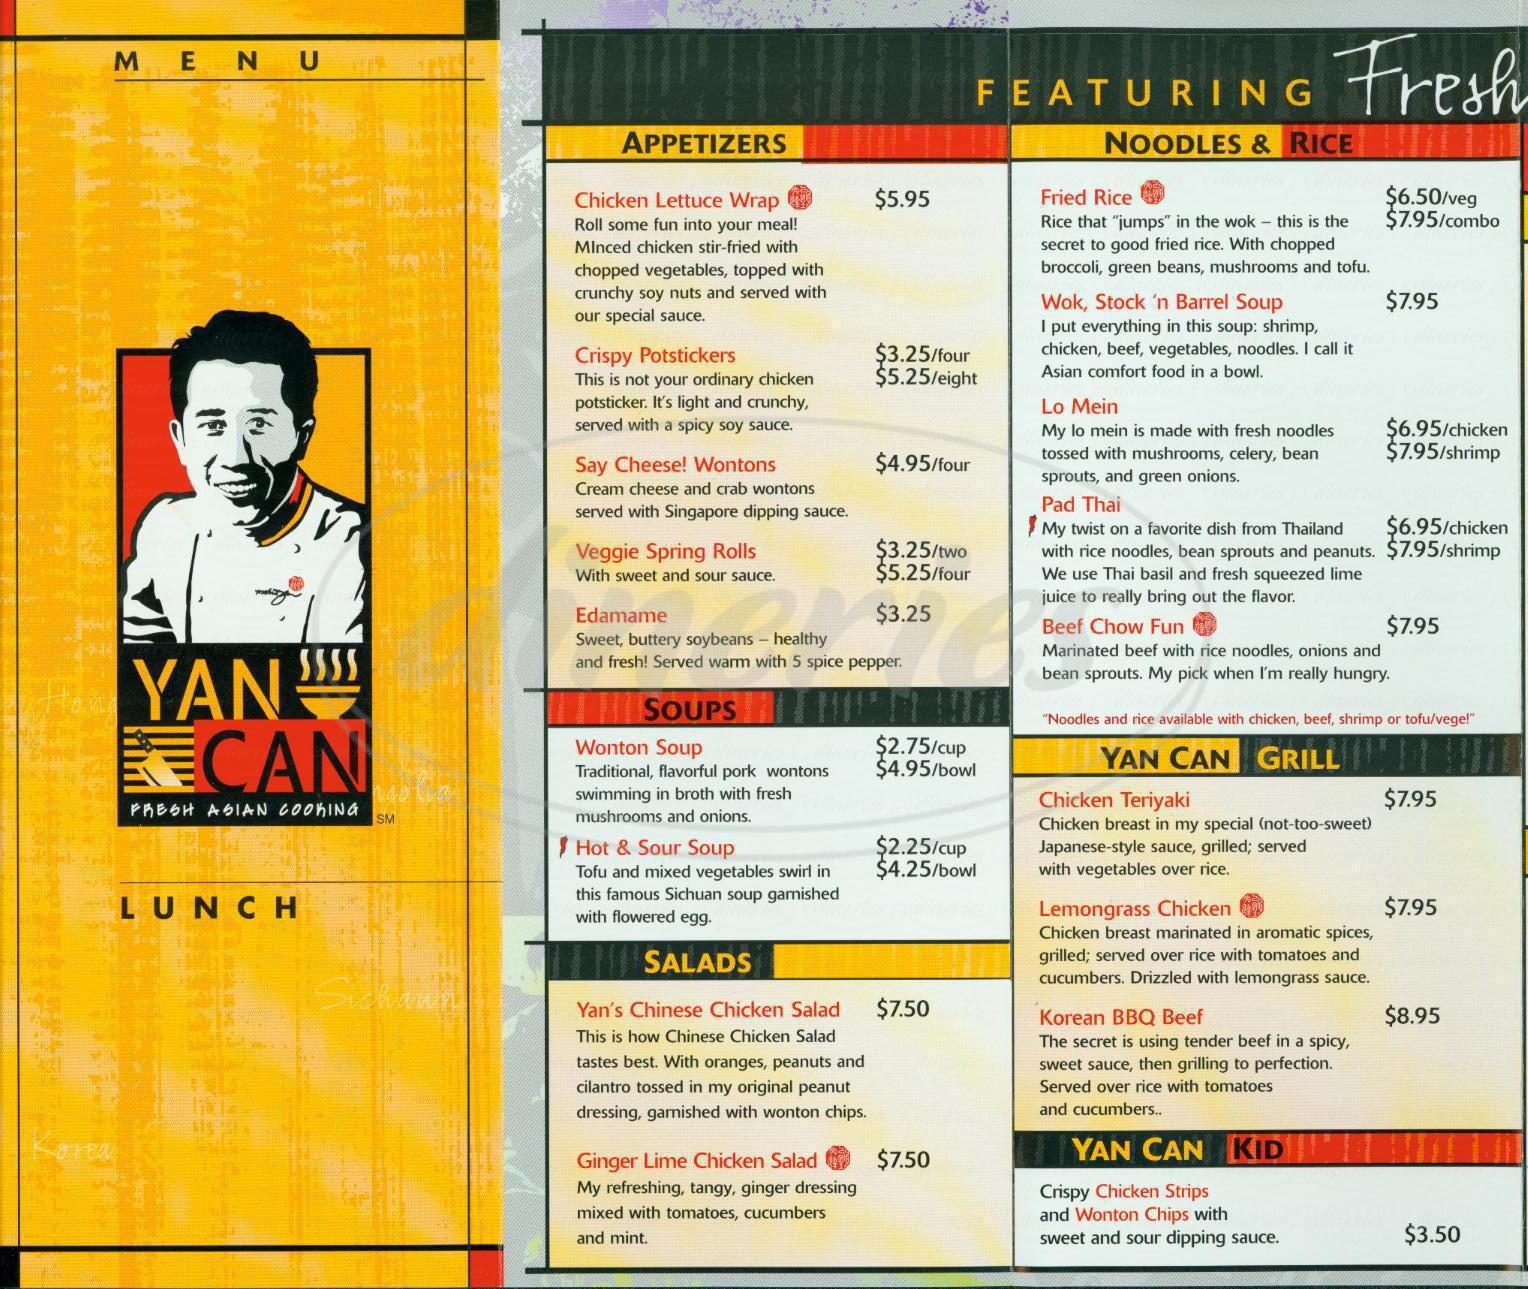 menu for Yan Can